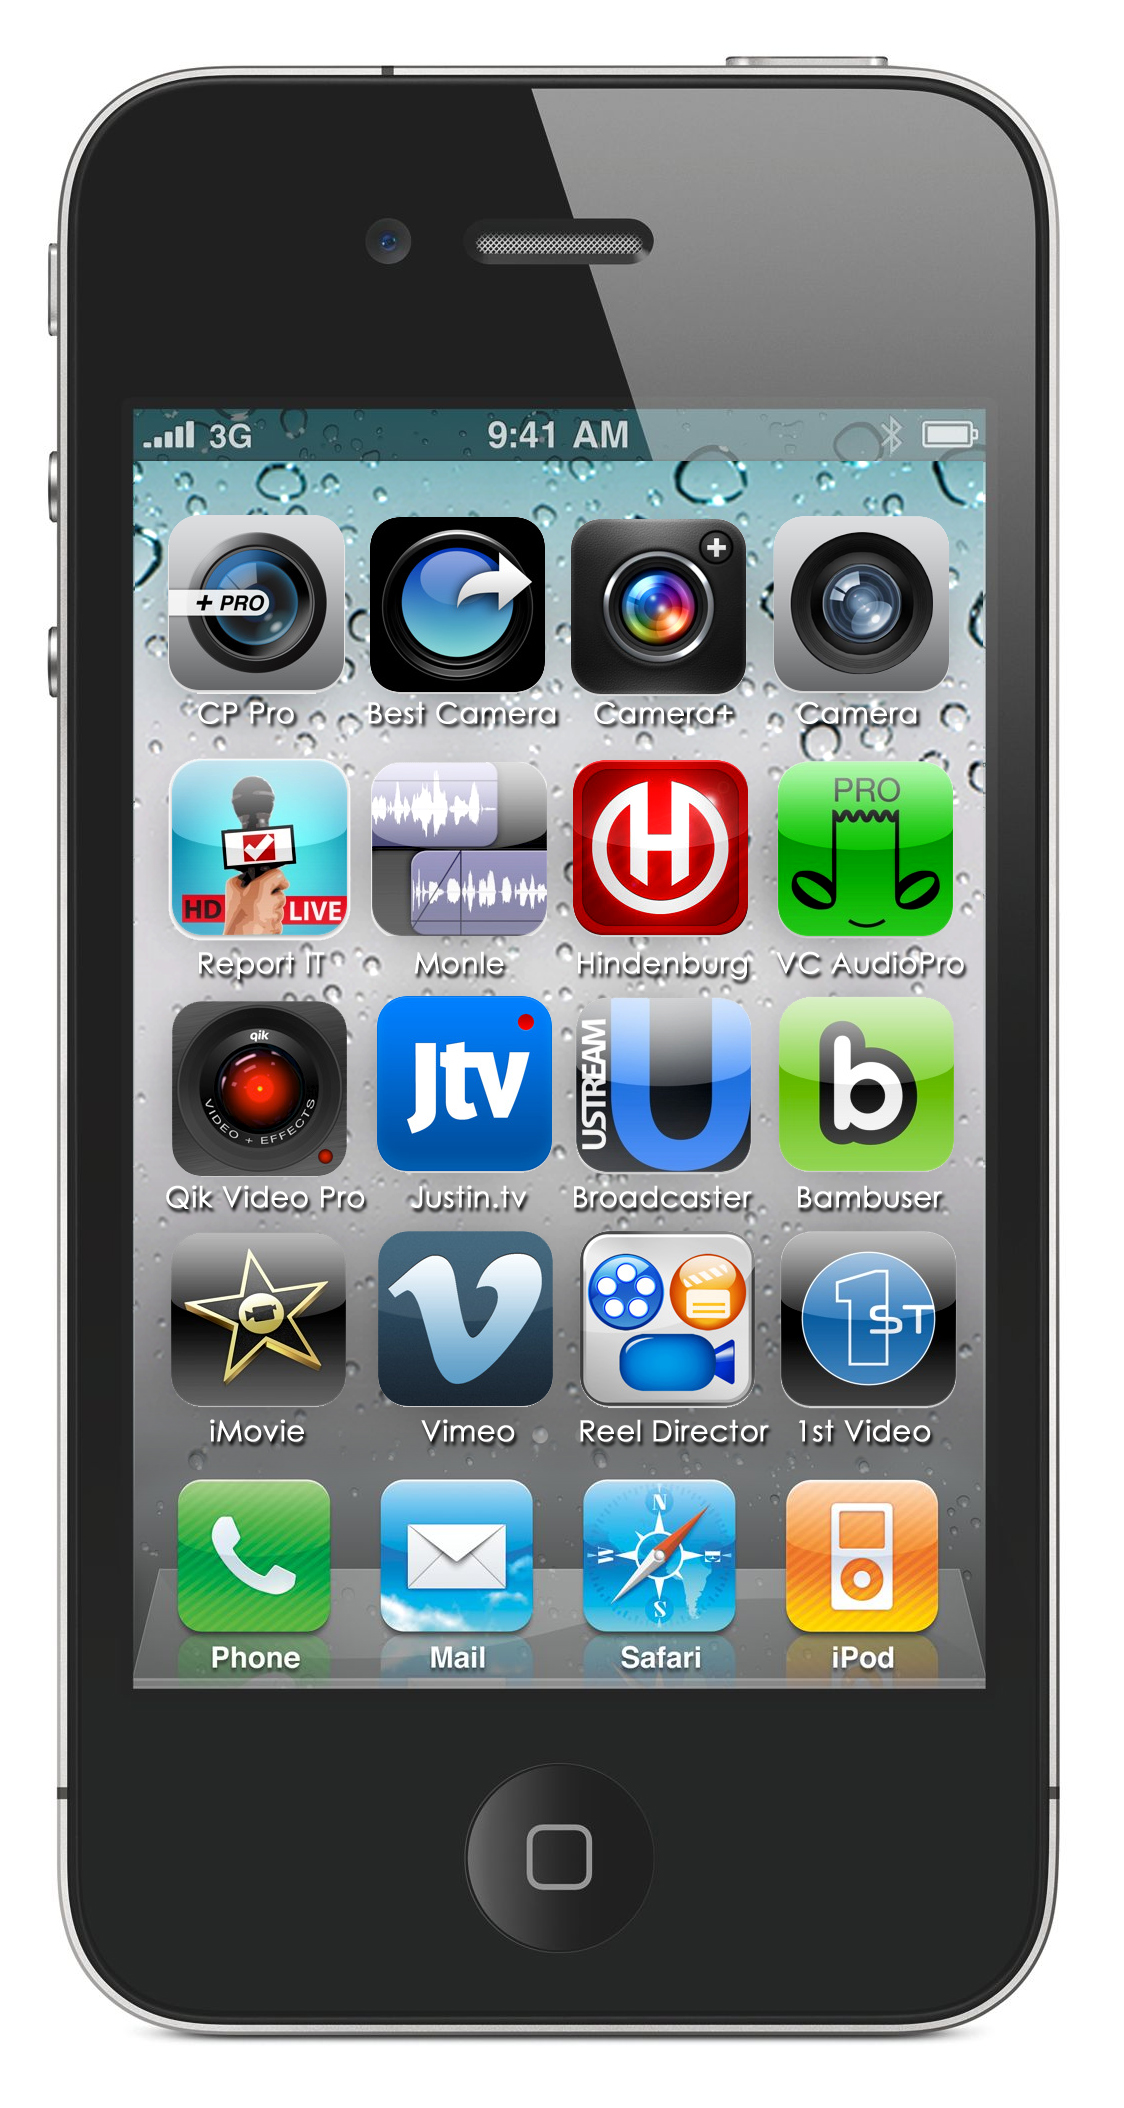 16 must have iphone apps for broadcasting glen mulcahy 39 s mobile journalism blog. Black Bedroom Furniture Sets. Home Design Ideas